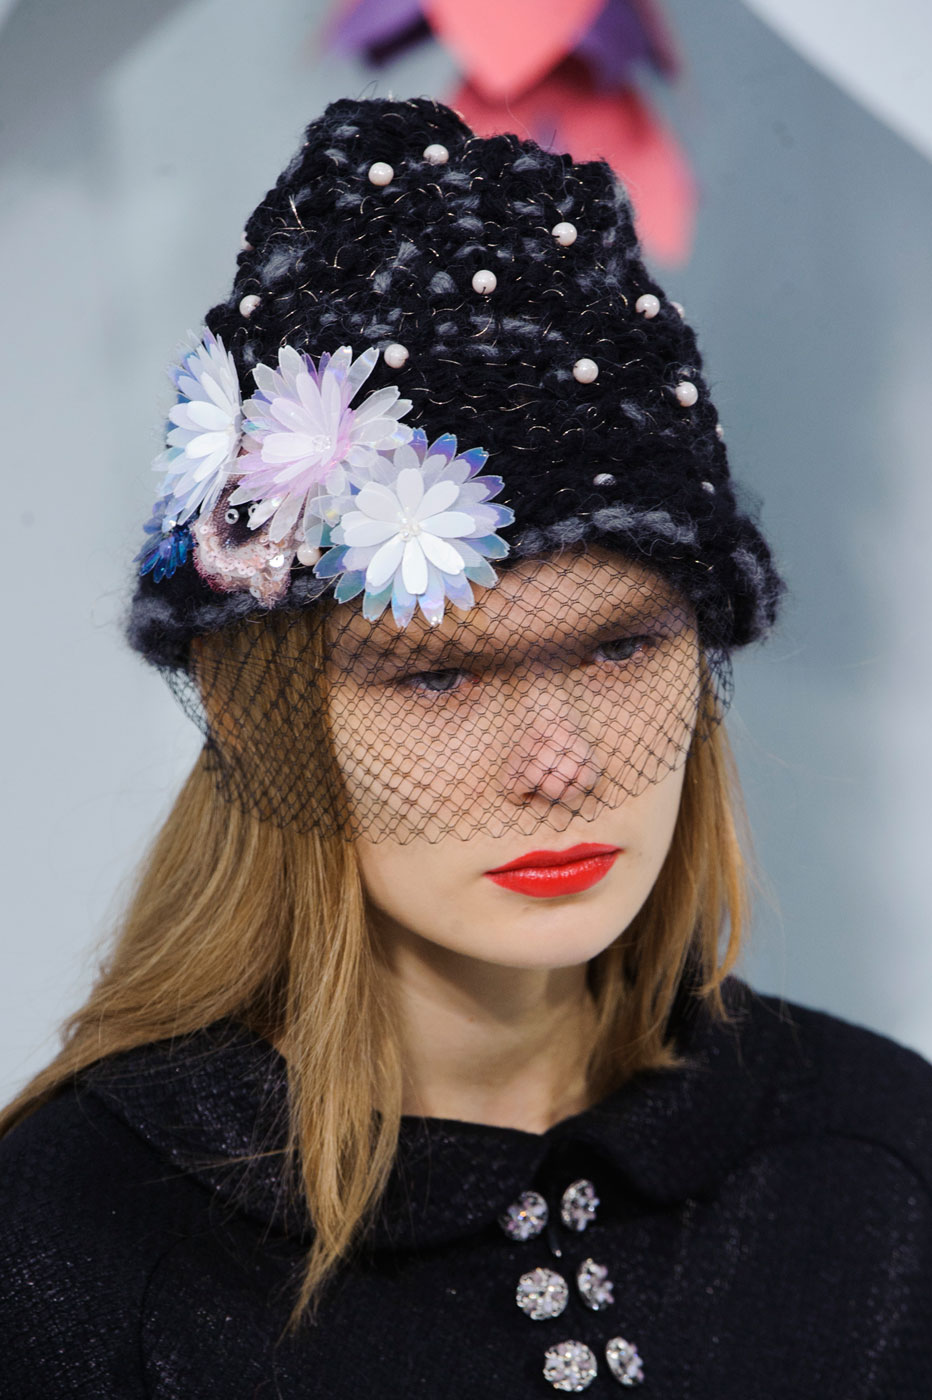 Chanel-fashion-runway-show-close-ups-haute-couture-paris-spring-summer-2015-the-impression-040